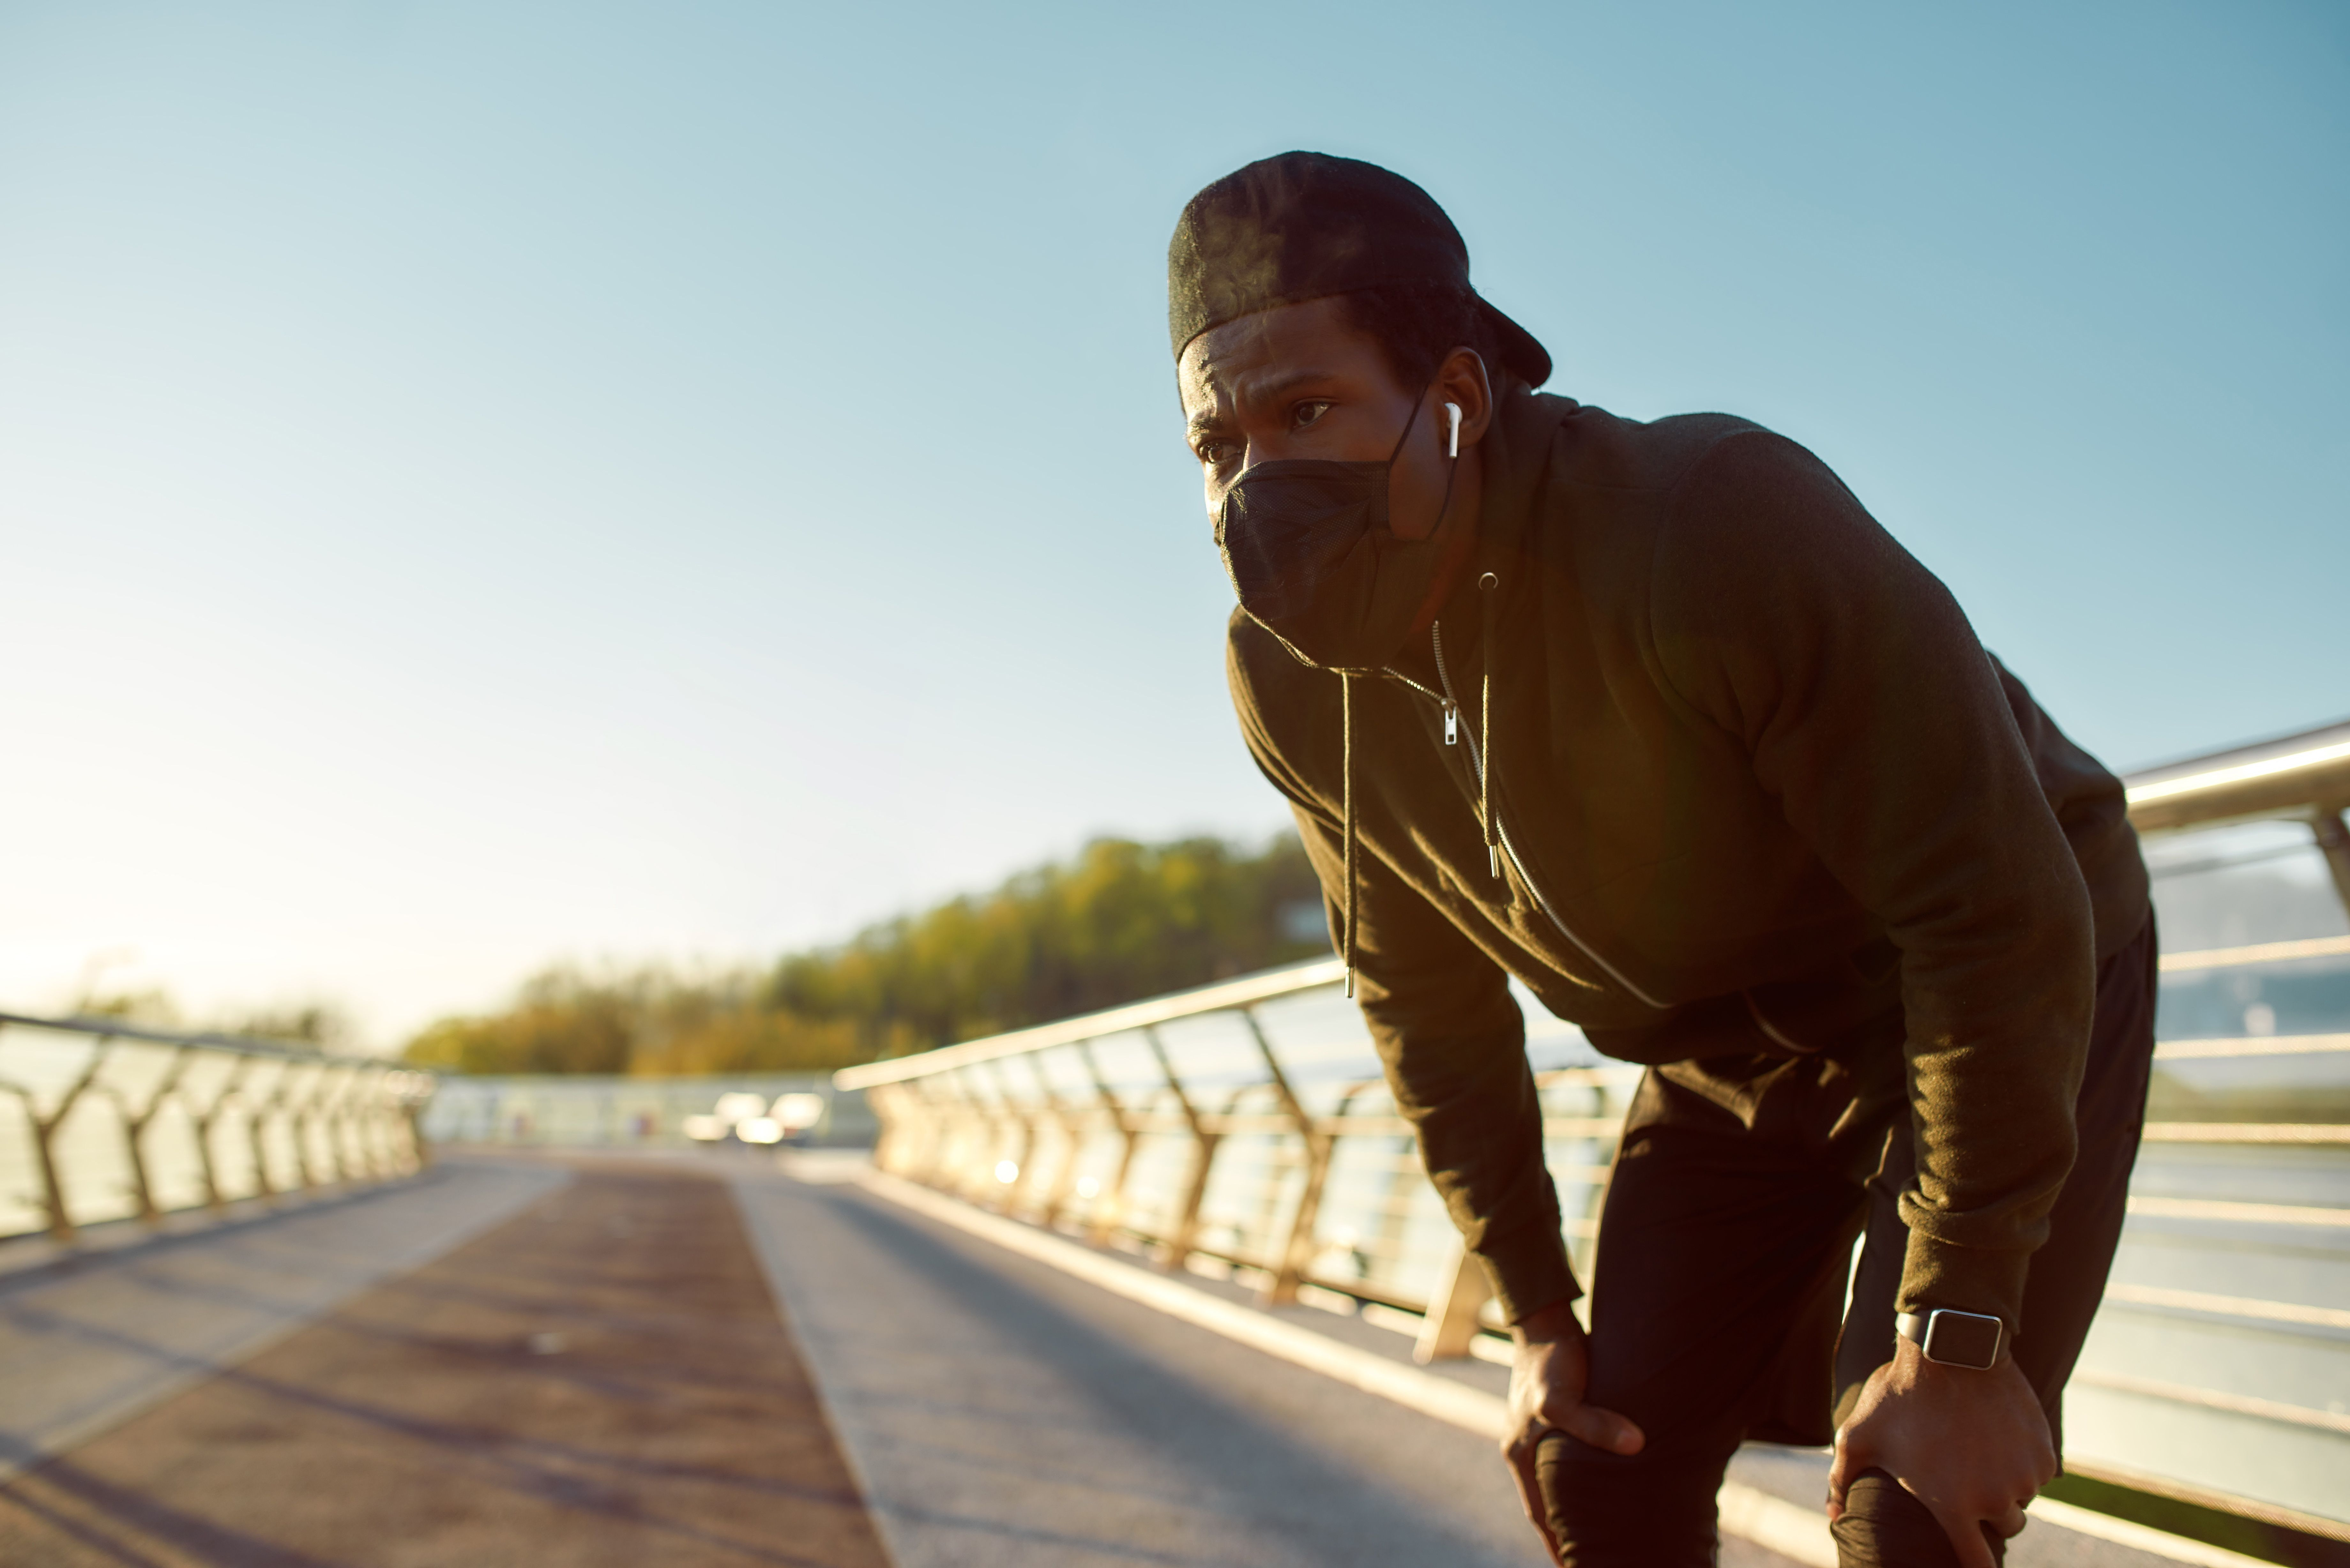 Why Is Running So Hard Right Now? These Quick Fixes Can Get You Back on Track